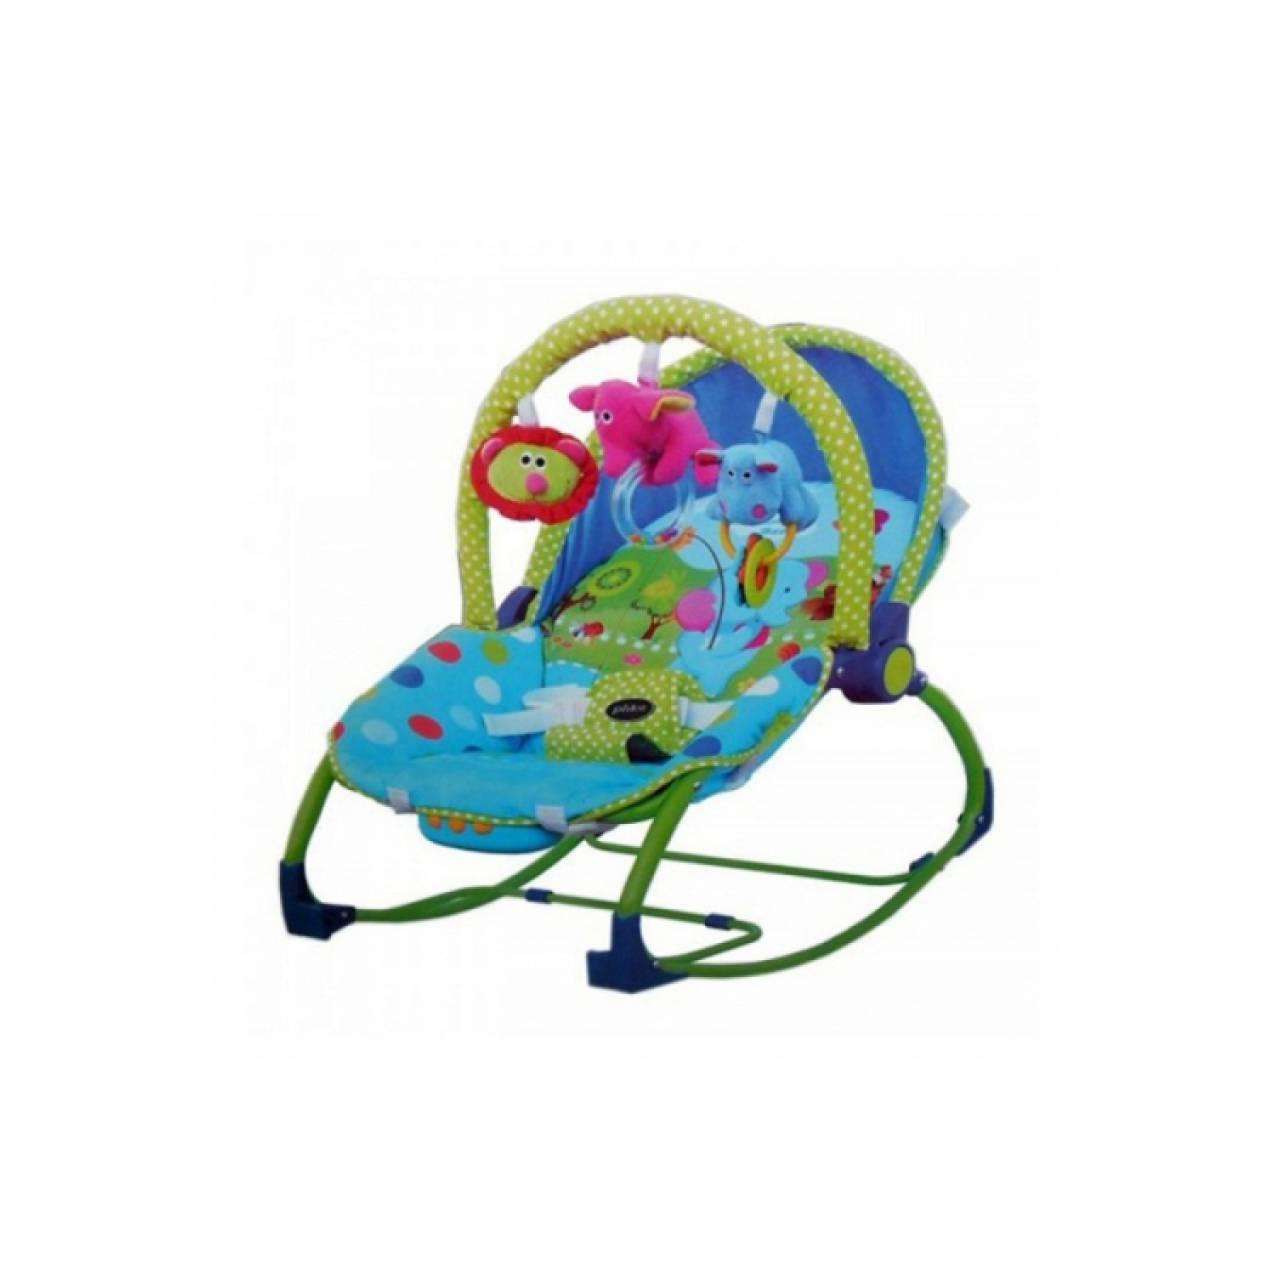 Bouncer Pliko Rocking Chair Hammock 3 Phases